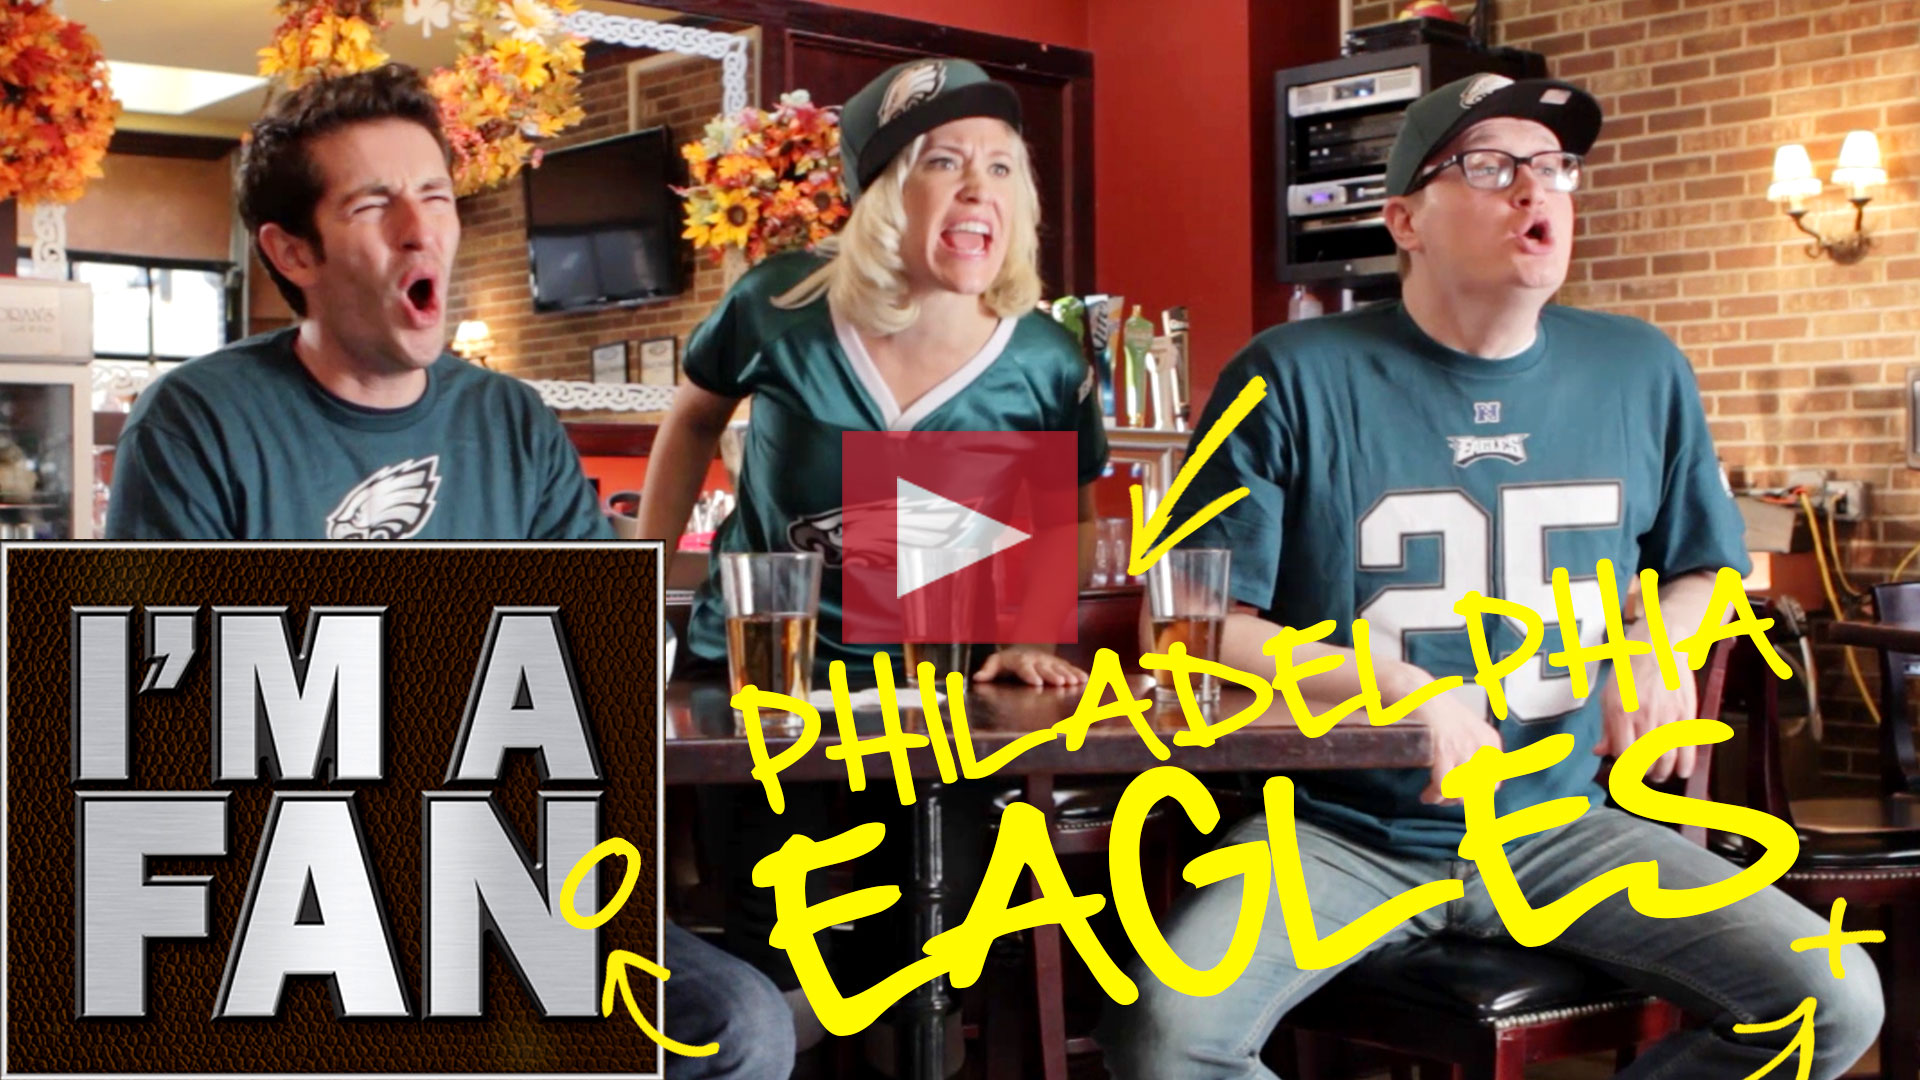 I'm A Fan - Philadelphia Eagles